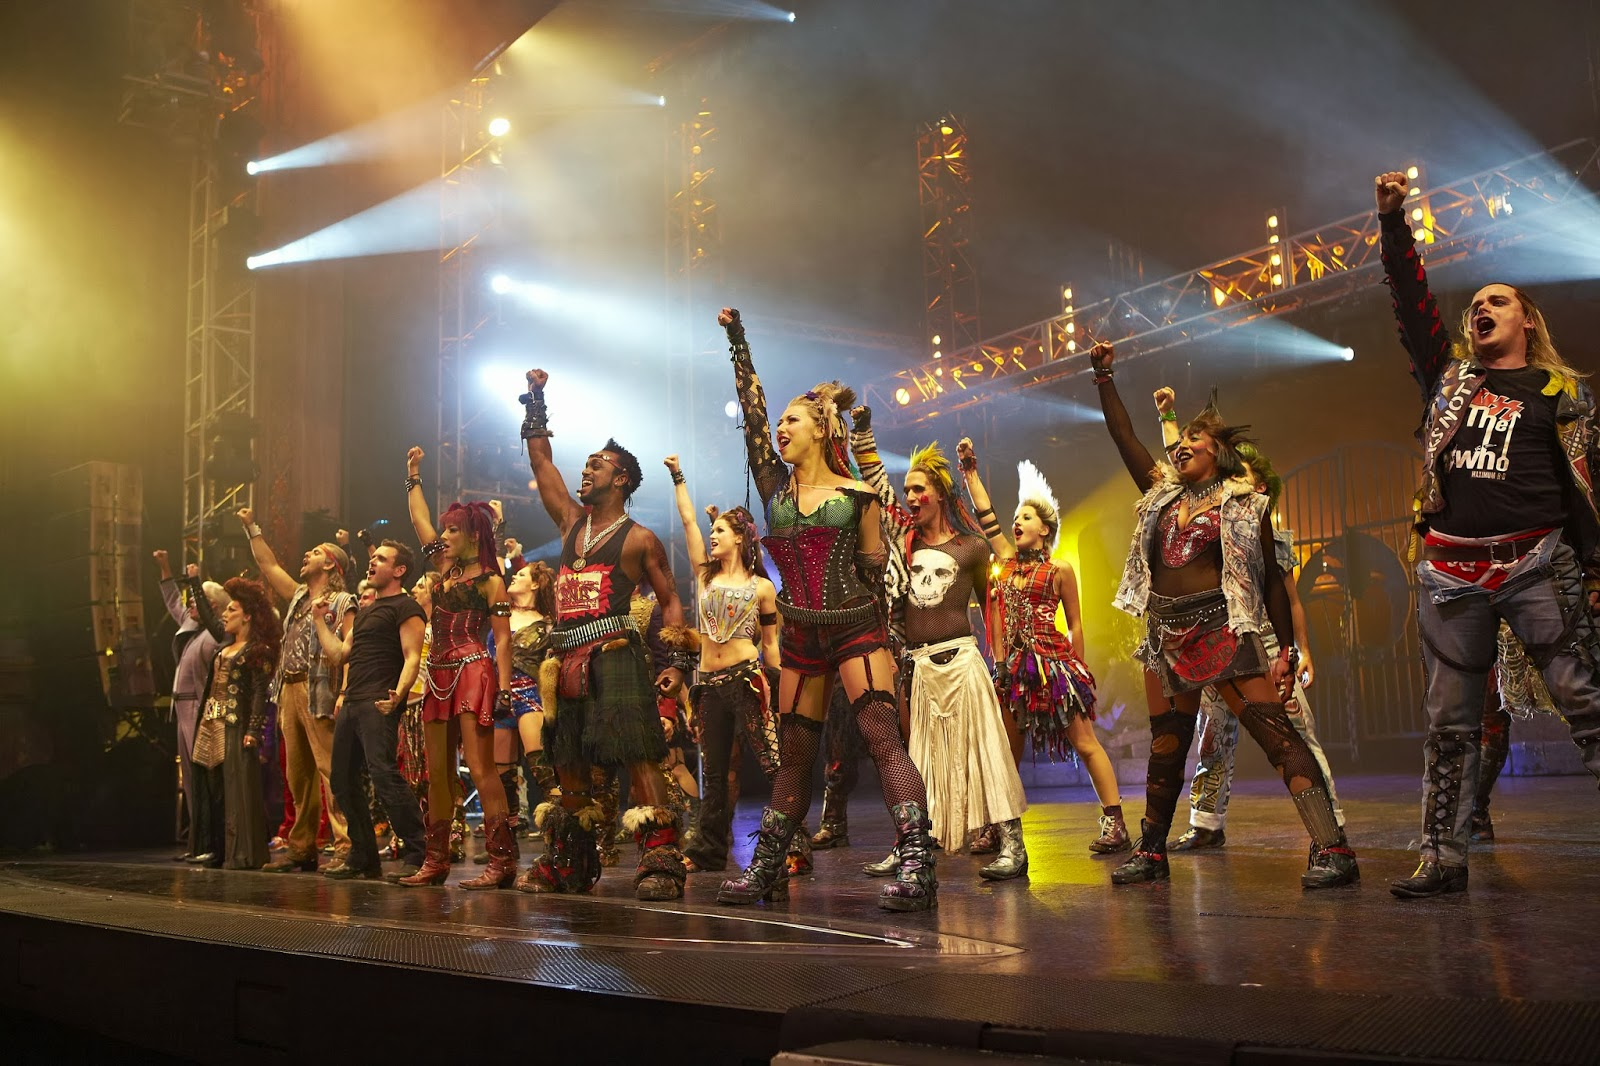 Top London Shows: We Will Rock You London